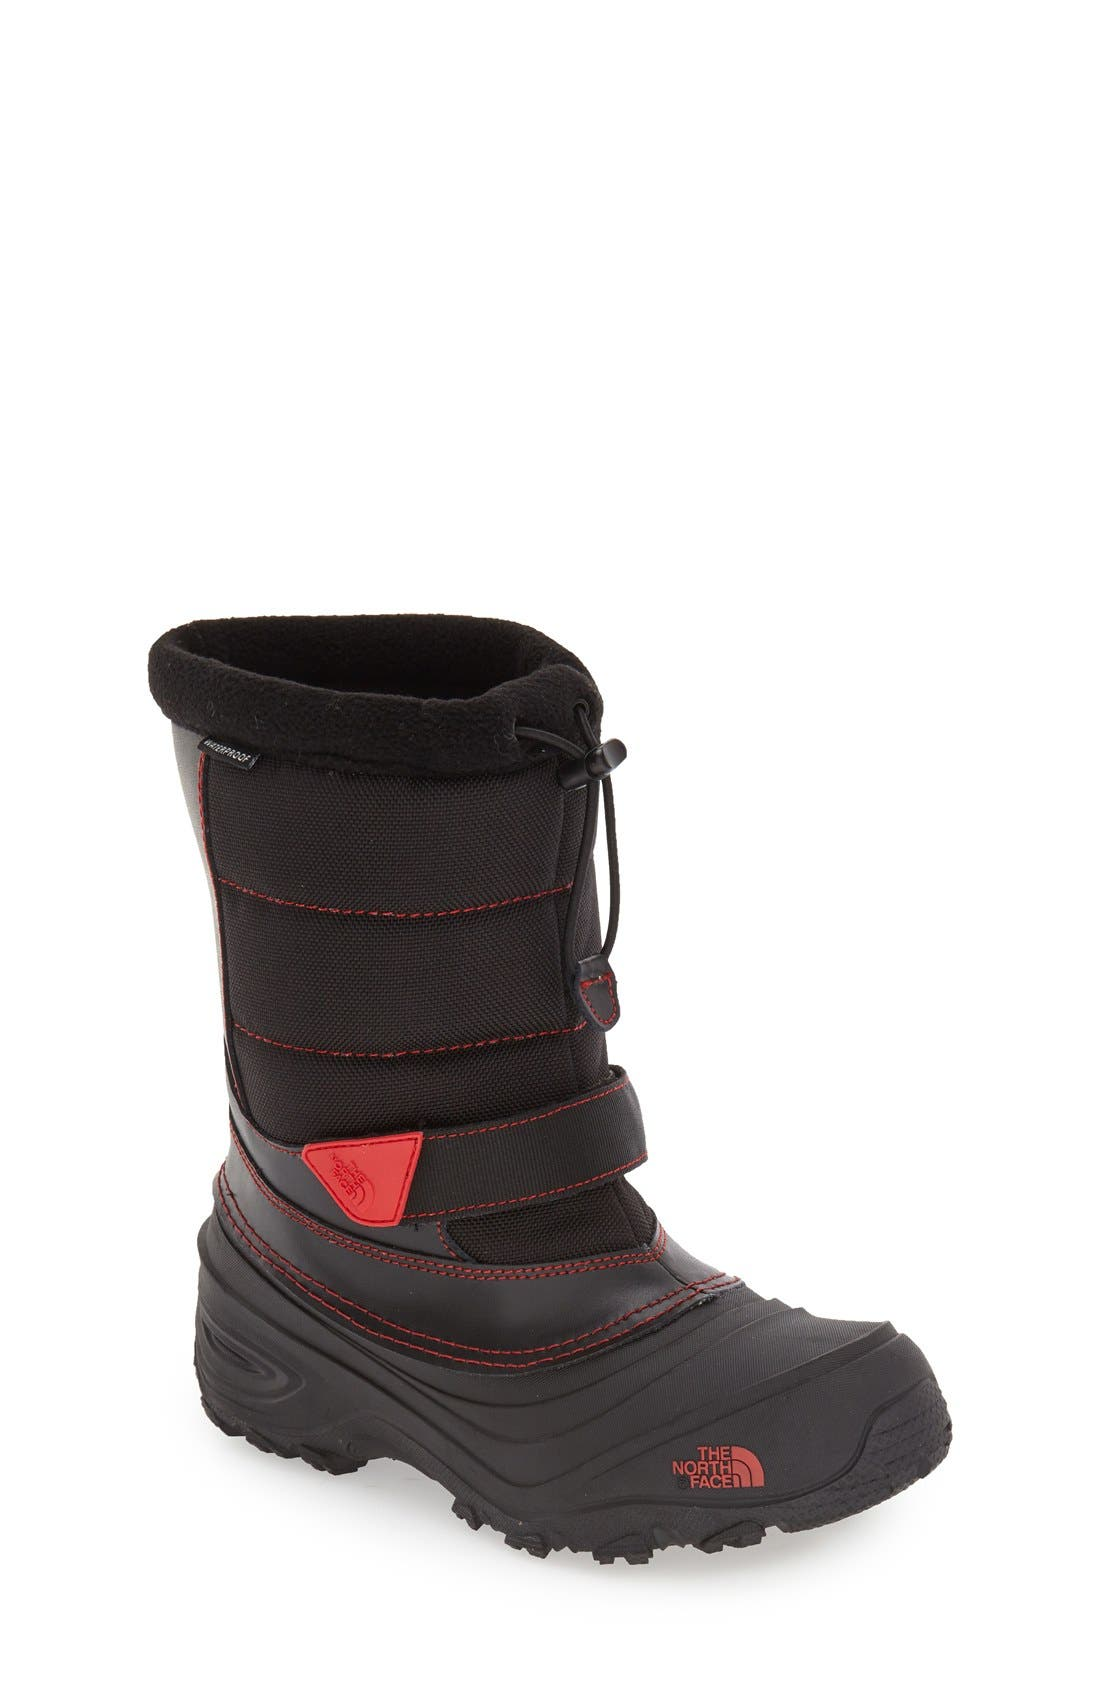 'Alpenglow Extreme II' Waterproof Snow Boot,                             Main thumbnail 1, color,                             Black/ Red